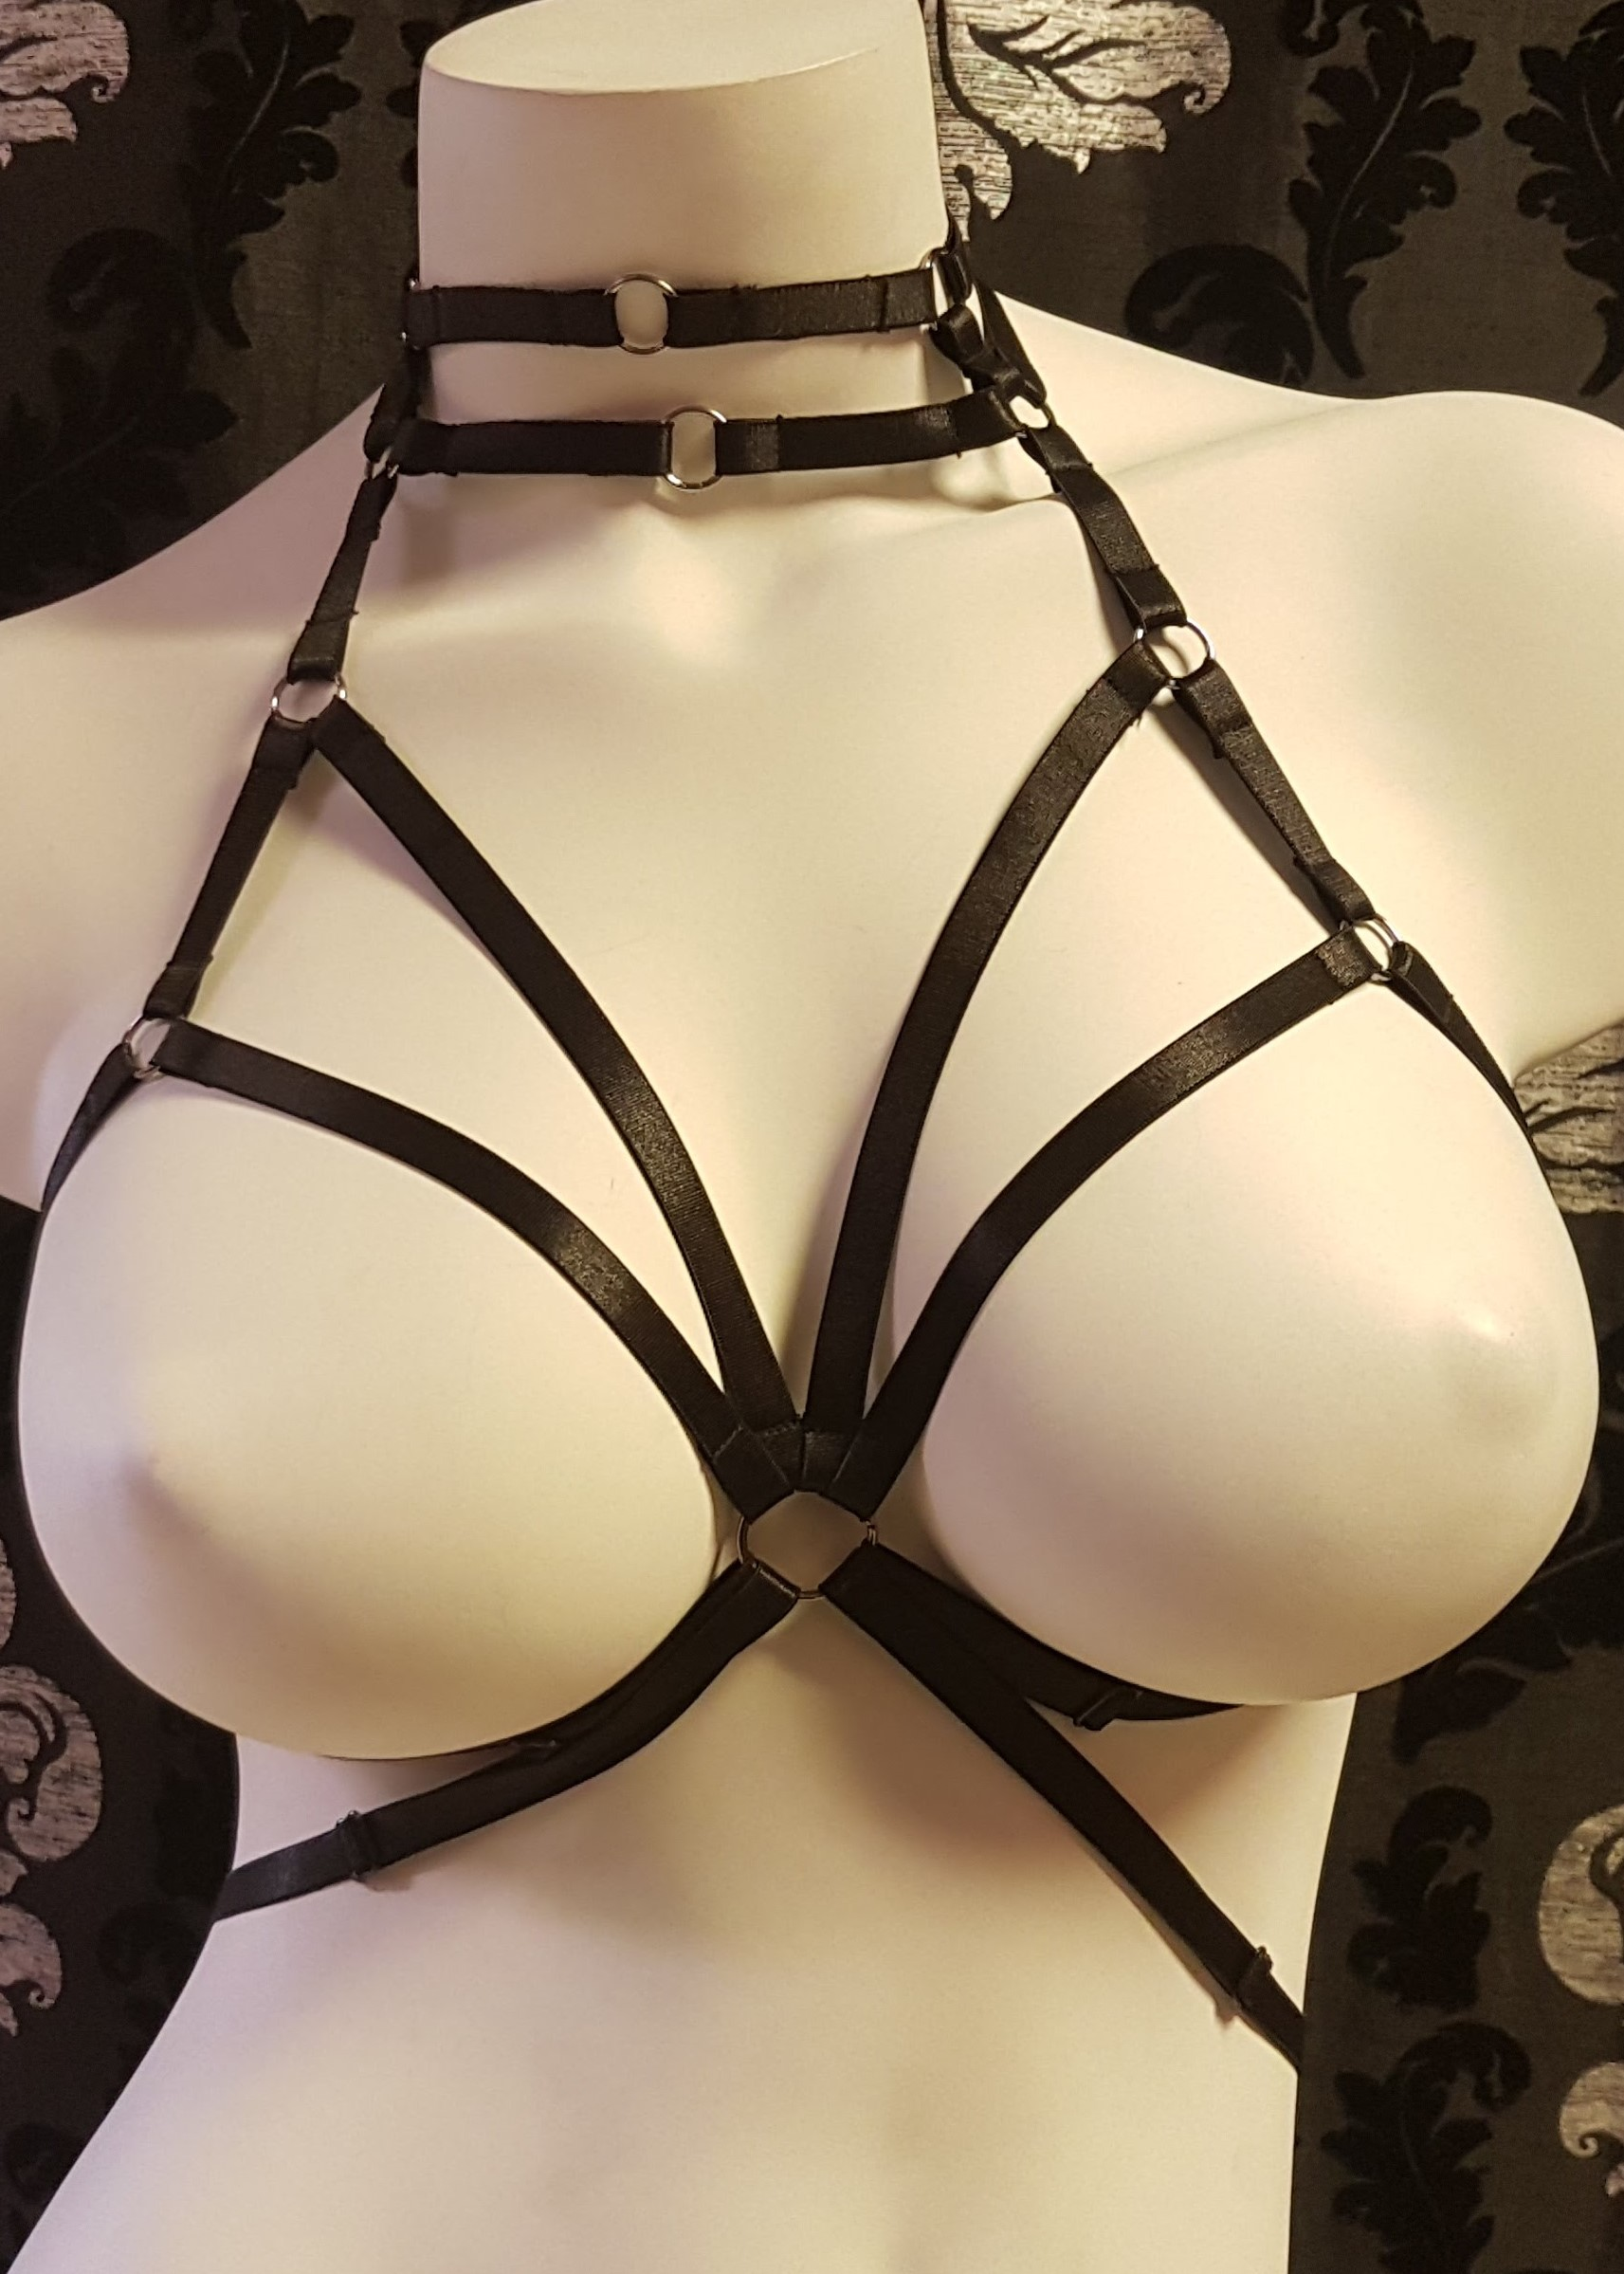 Strappy elastic harness body cage 81535 Edmonton